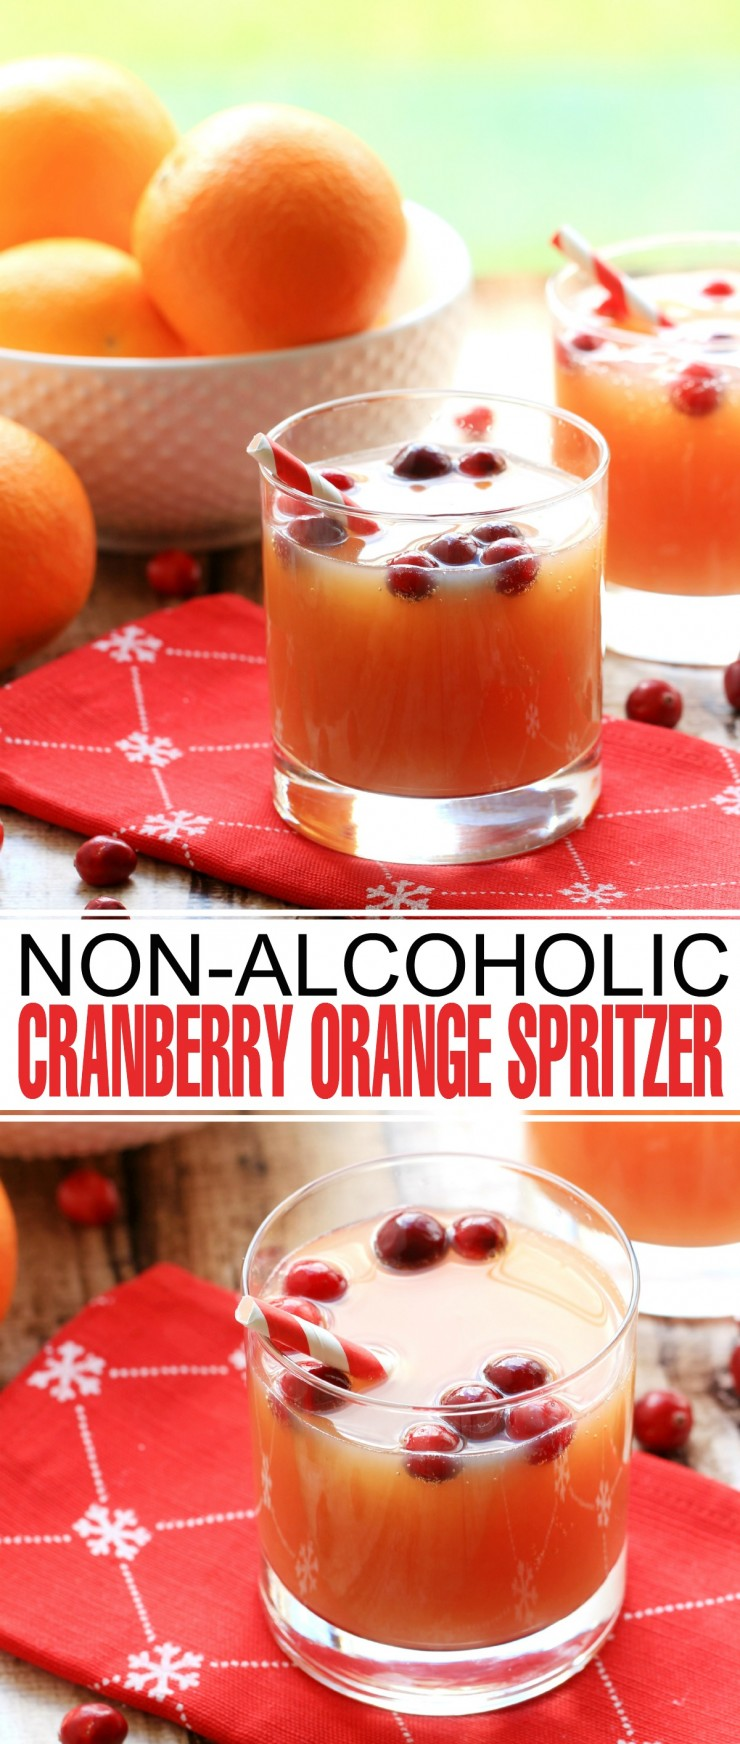 This Non-Alcoholic Cranberry Orange Spritzer is a festive drink for ...